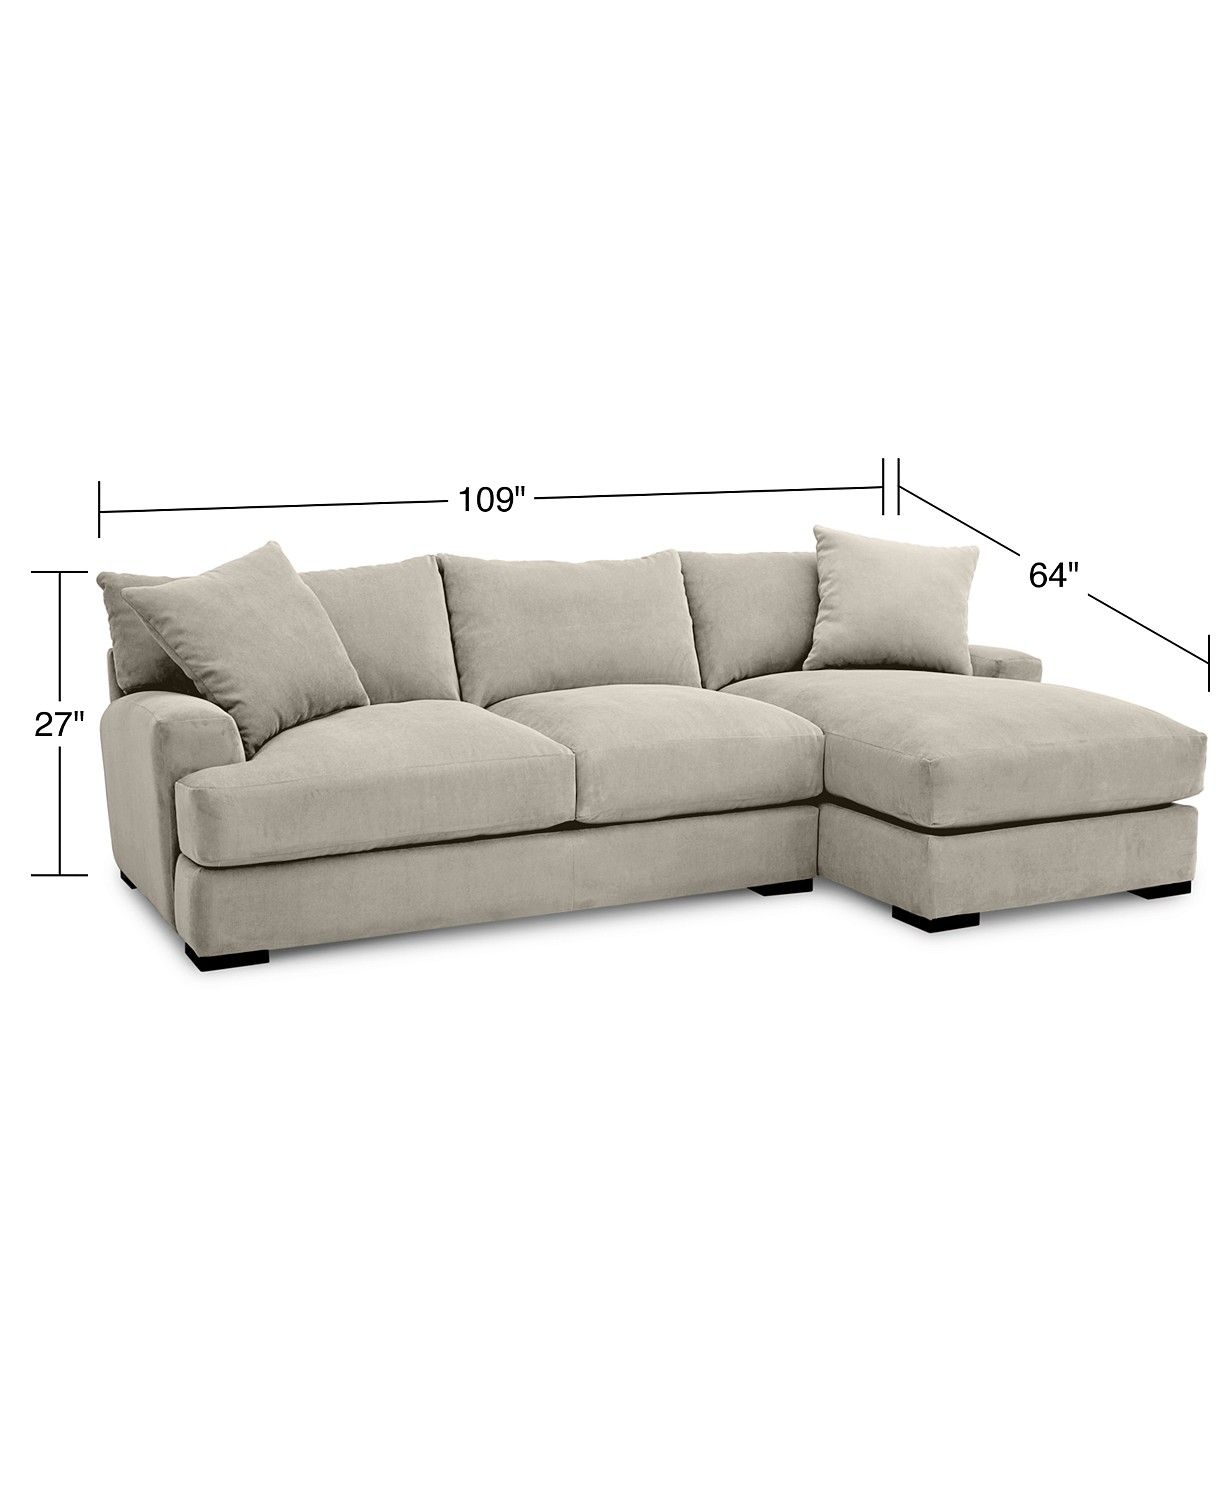 Furniture Rhyder 2 Pc Fabric Sectional Sofa With Chaise Created For Macy S Reviews Furniture Macy S Sectional Sofa With Chaise Fabric Sectional Sofas Couch With Chaise